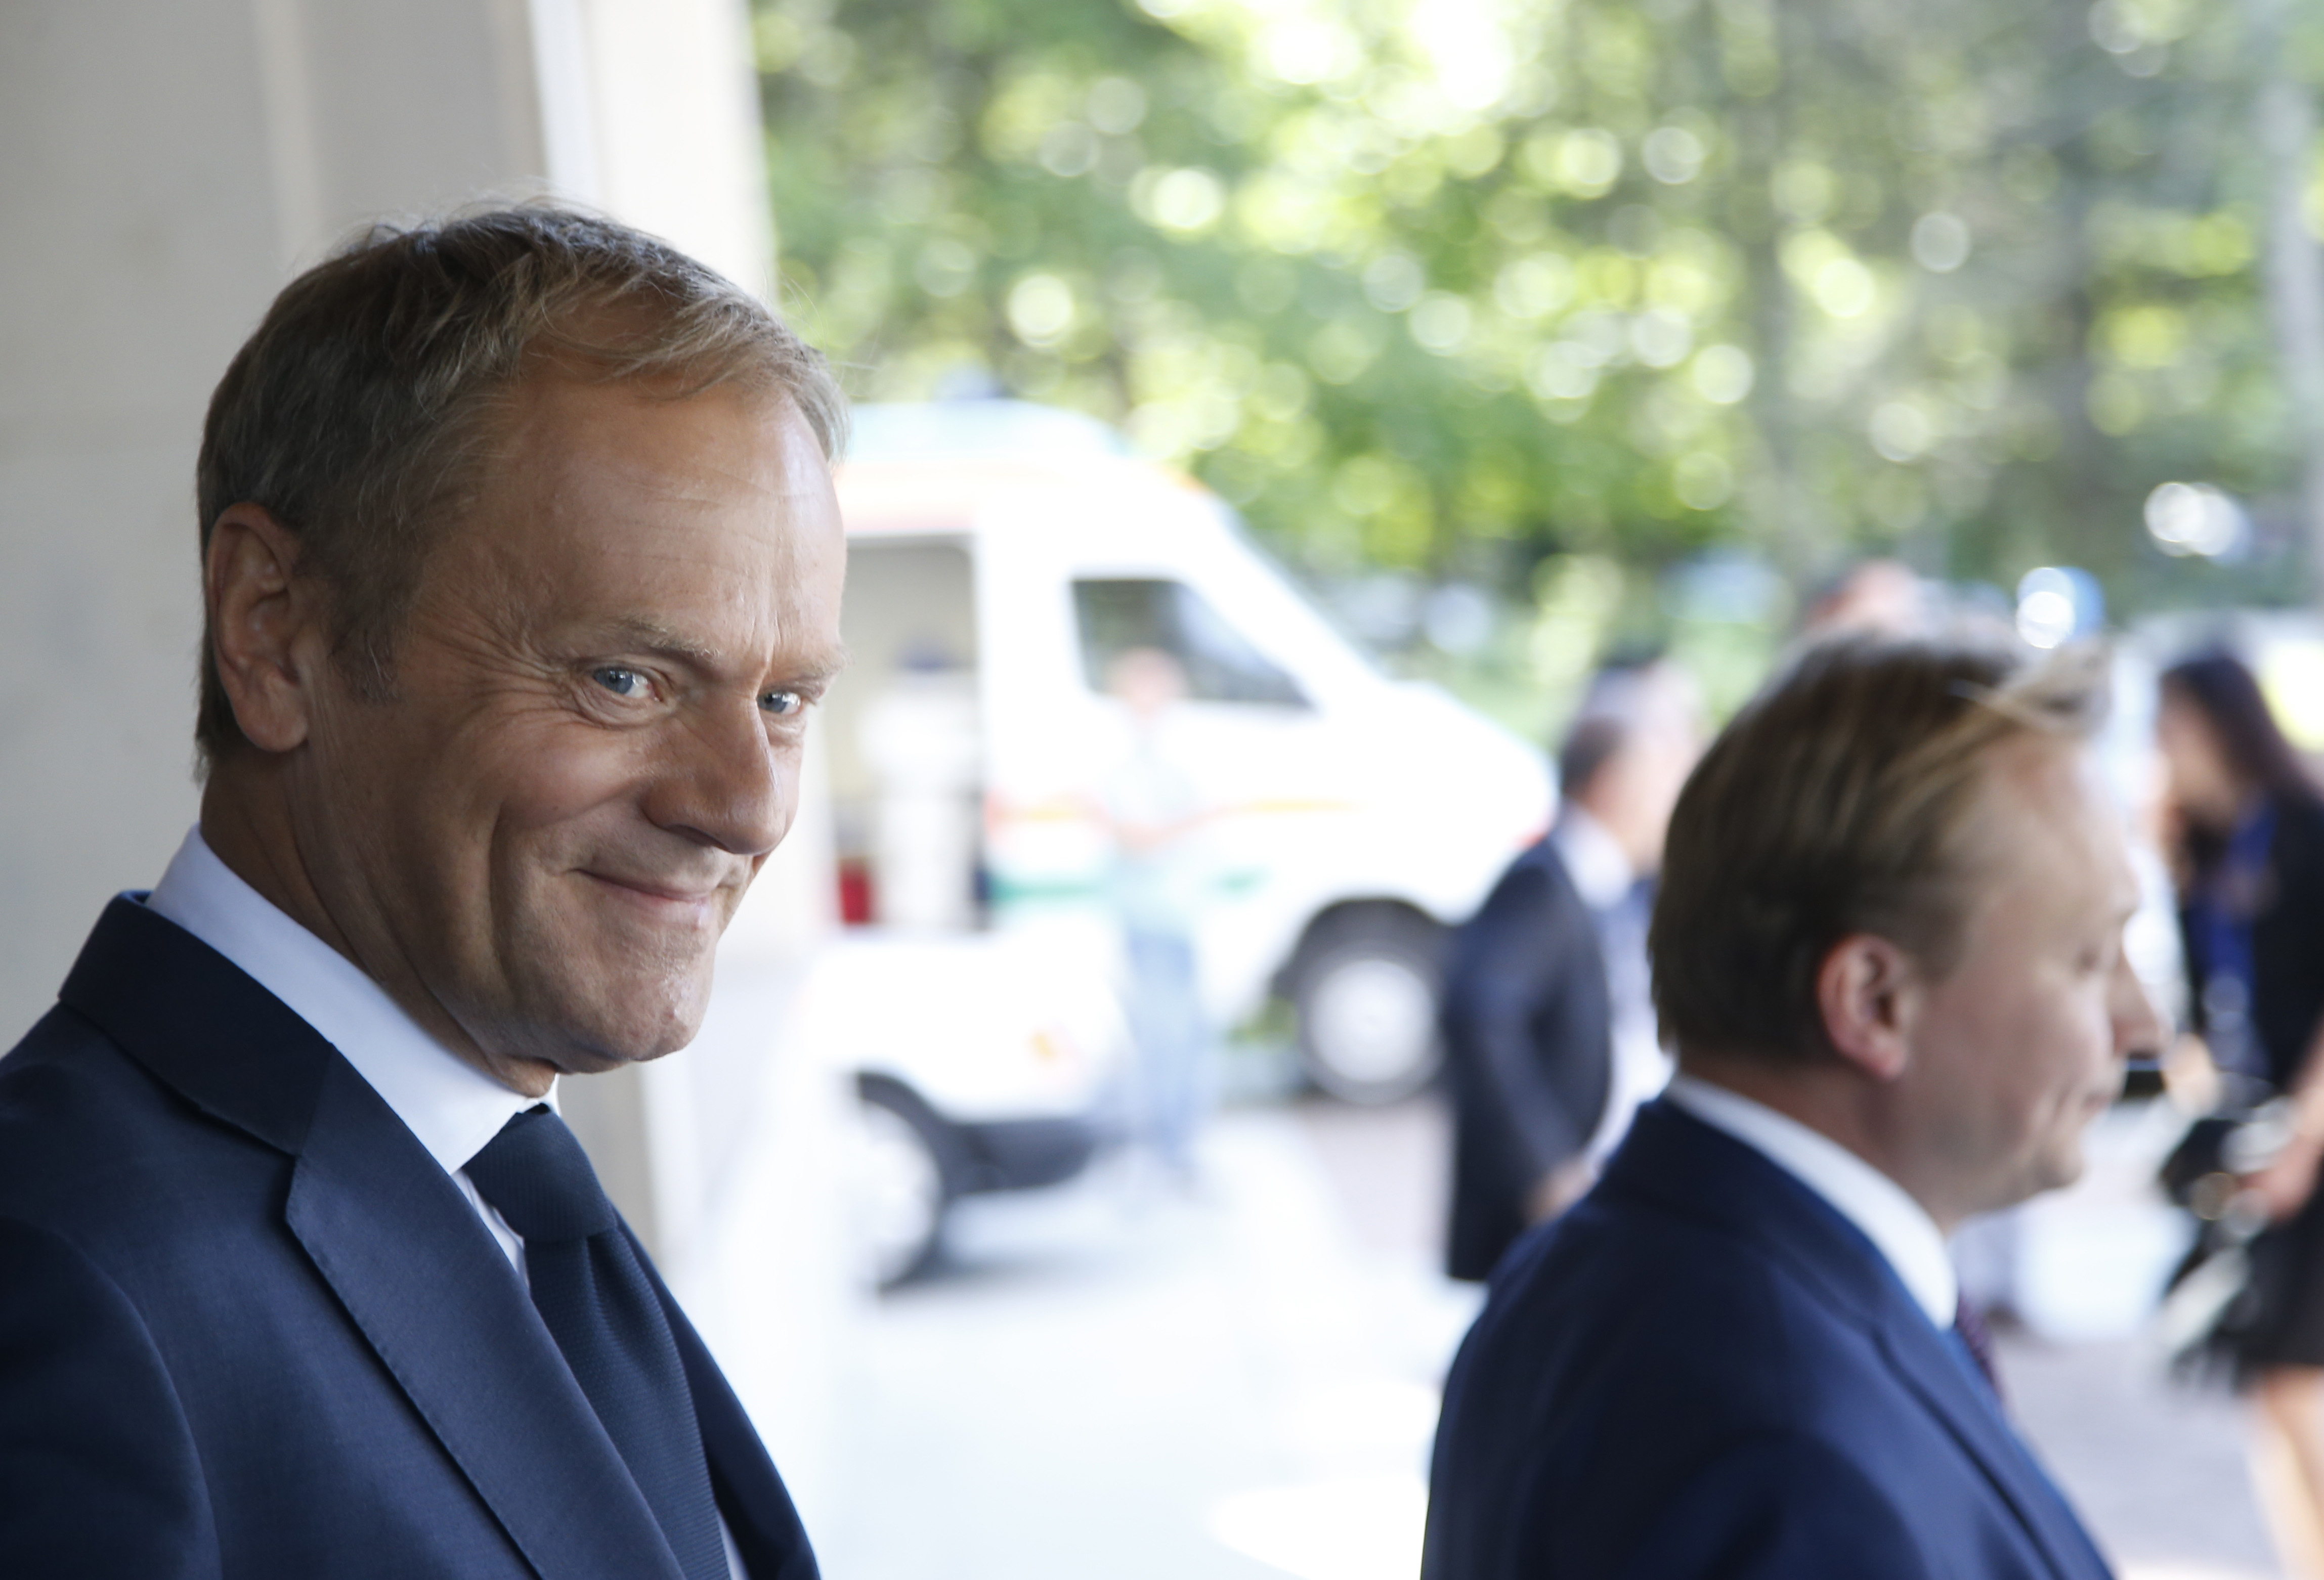 With friends like Donald Trump, who needs enemies: EU chief Donald Tusk